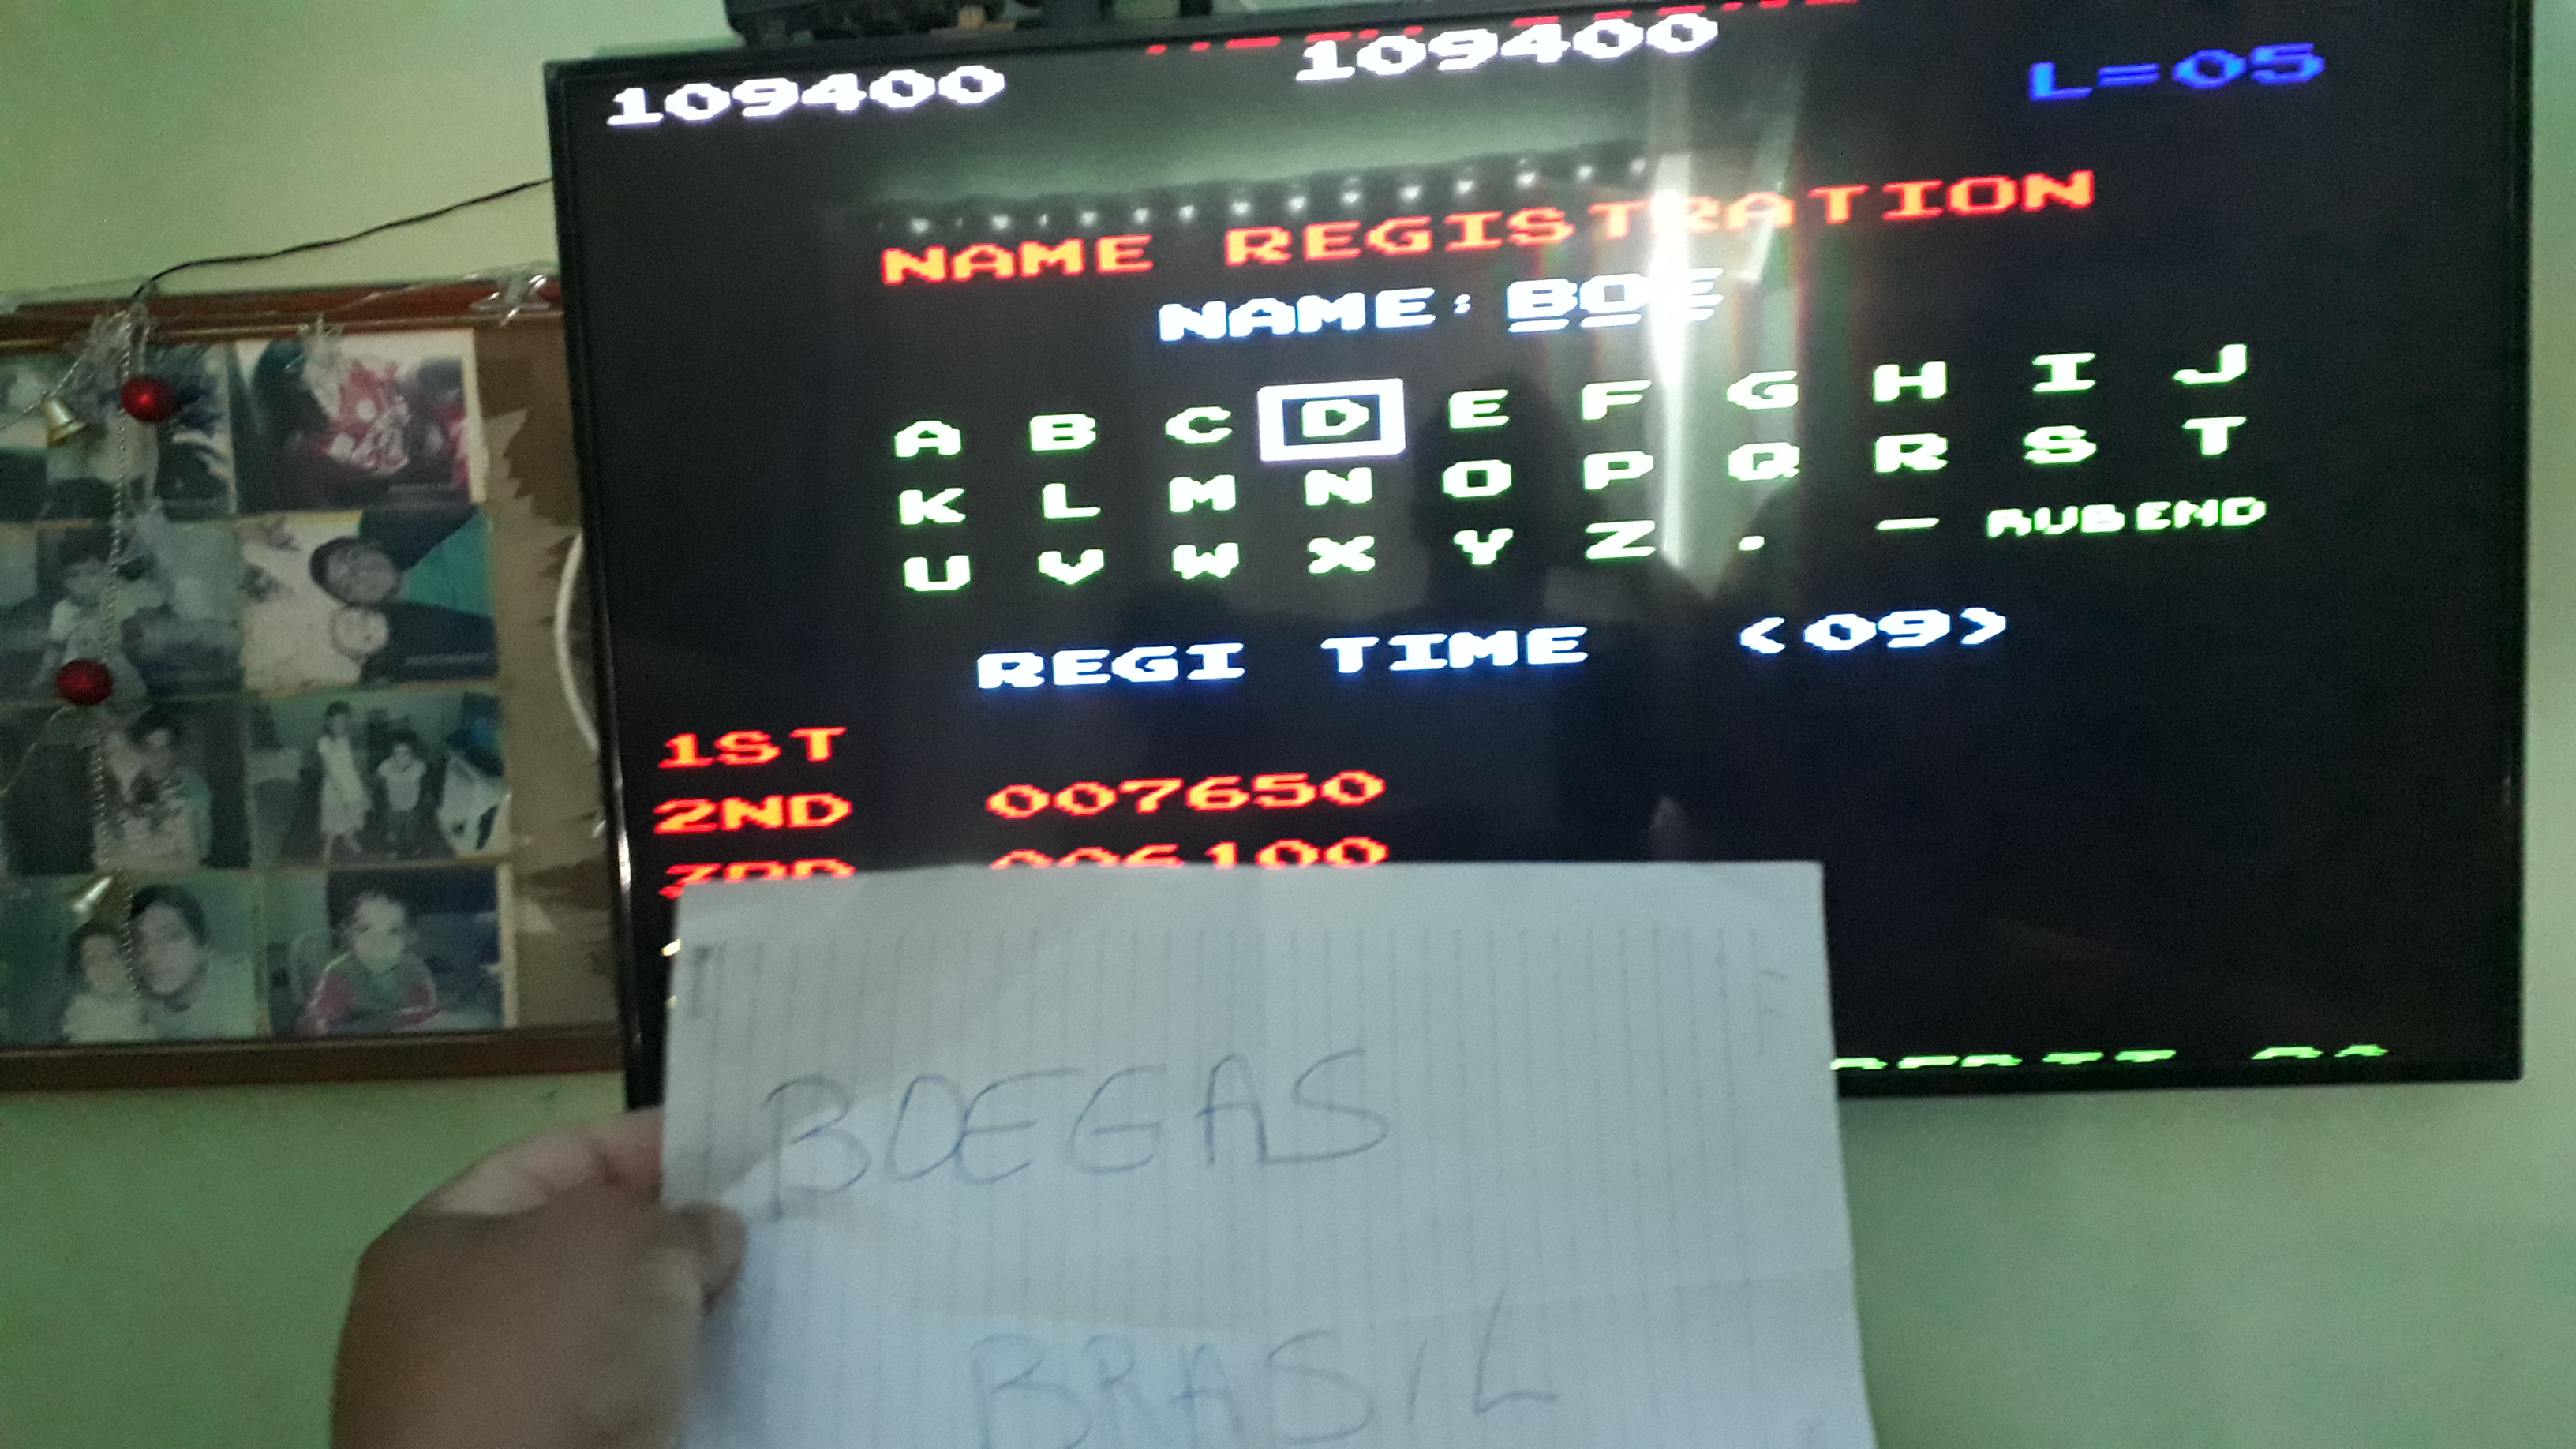 Boegas: Donkey Kong (Arcade Emulated / M.A.M.E.) 109,400 points on 2019-01-13 07:41:19